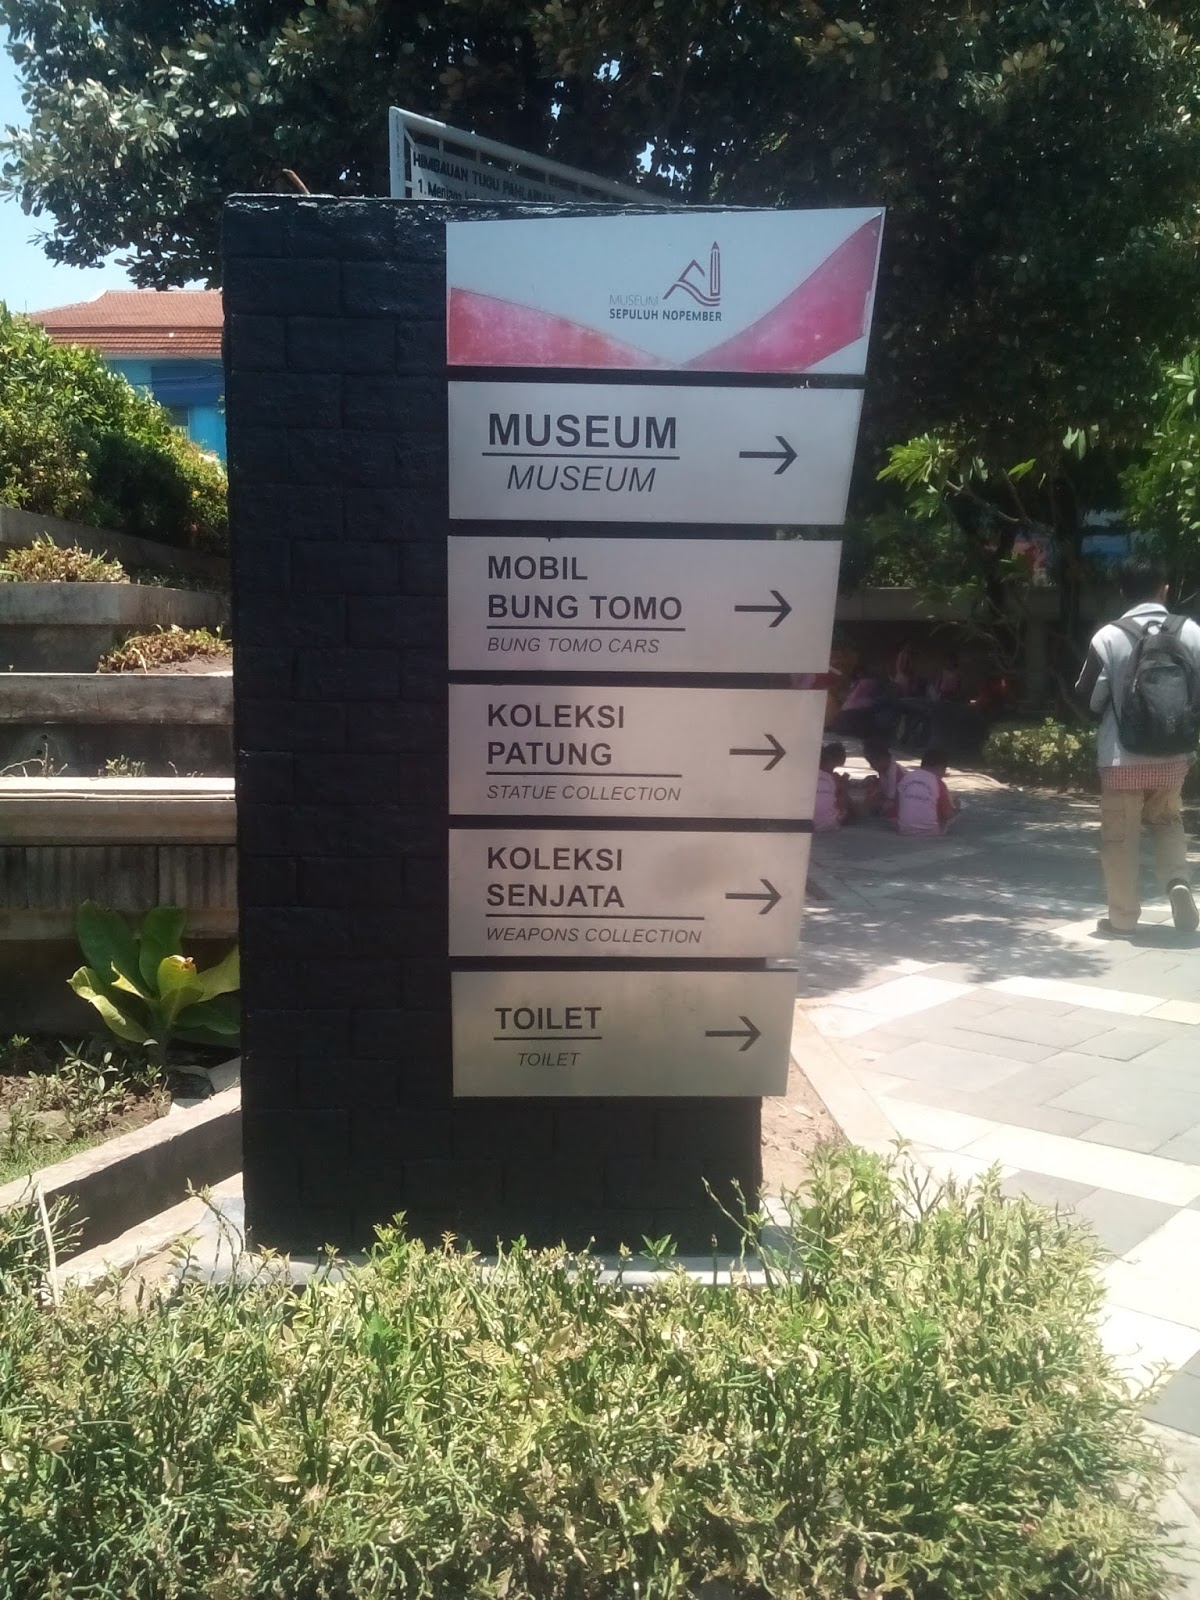 TUGU PAHLAWAN MUSEUM 10 NOVEMBER SURABAYA If Theres Dora The